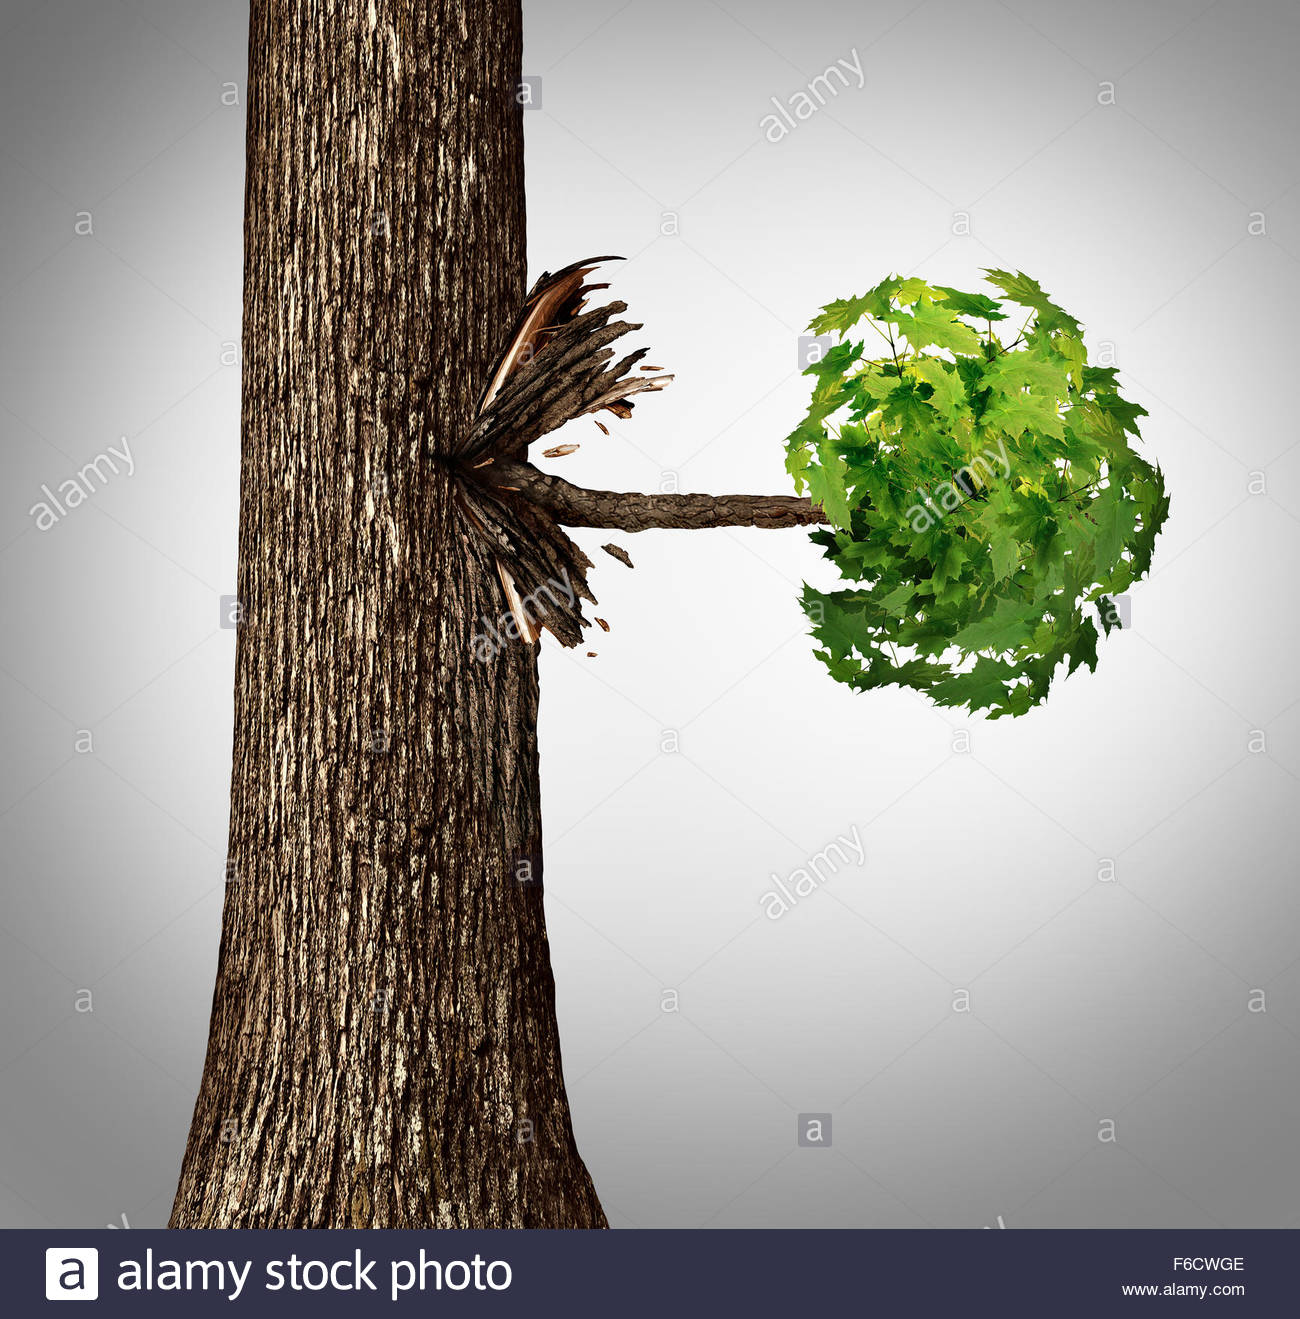 Outgrowth Stock Photos & Outgrowth Stock Images.